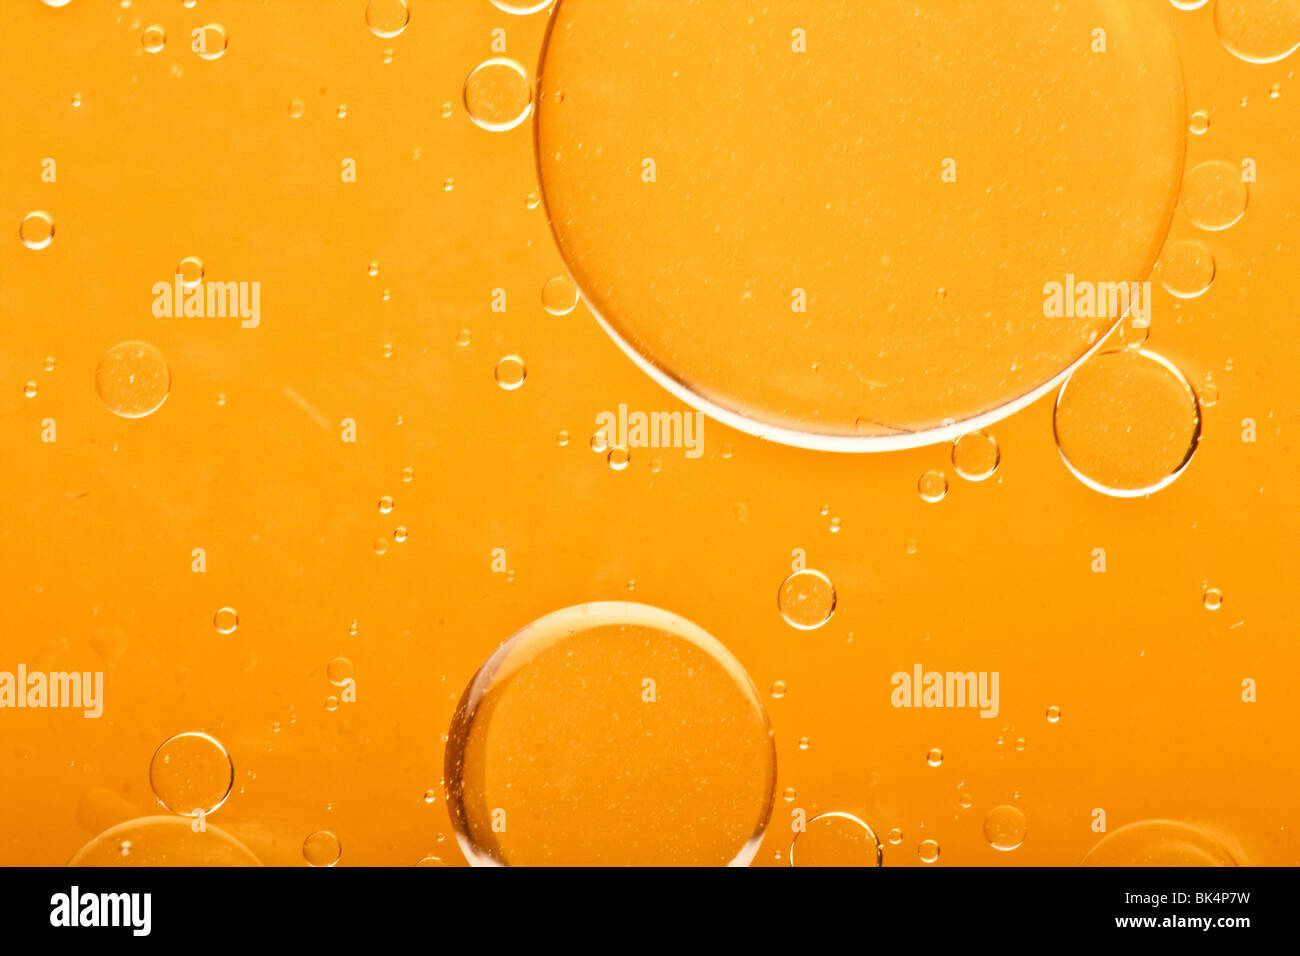 oil drops - Stock Image